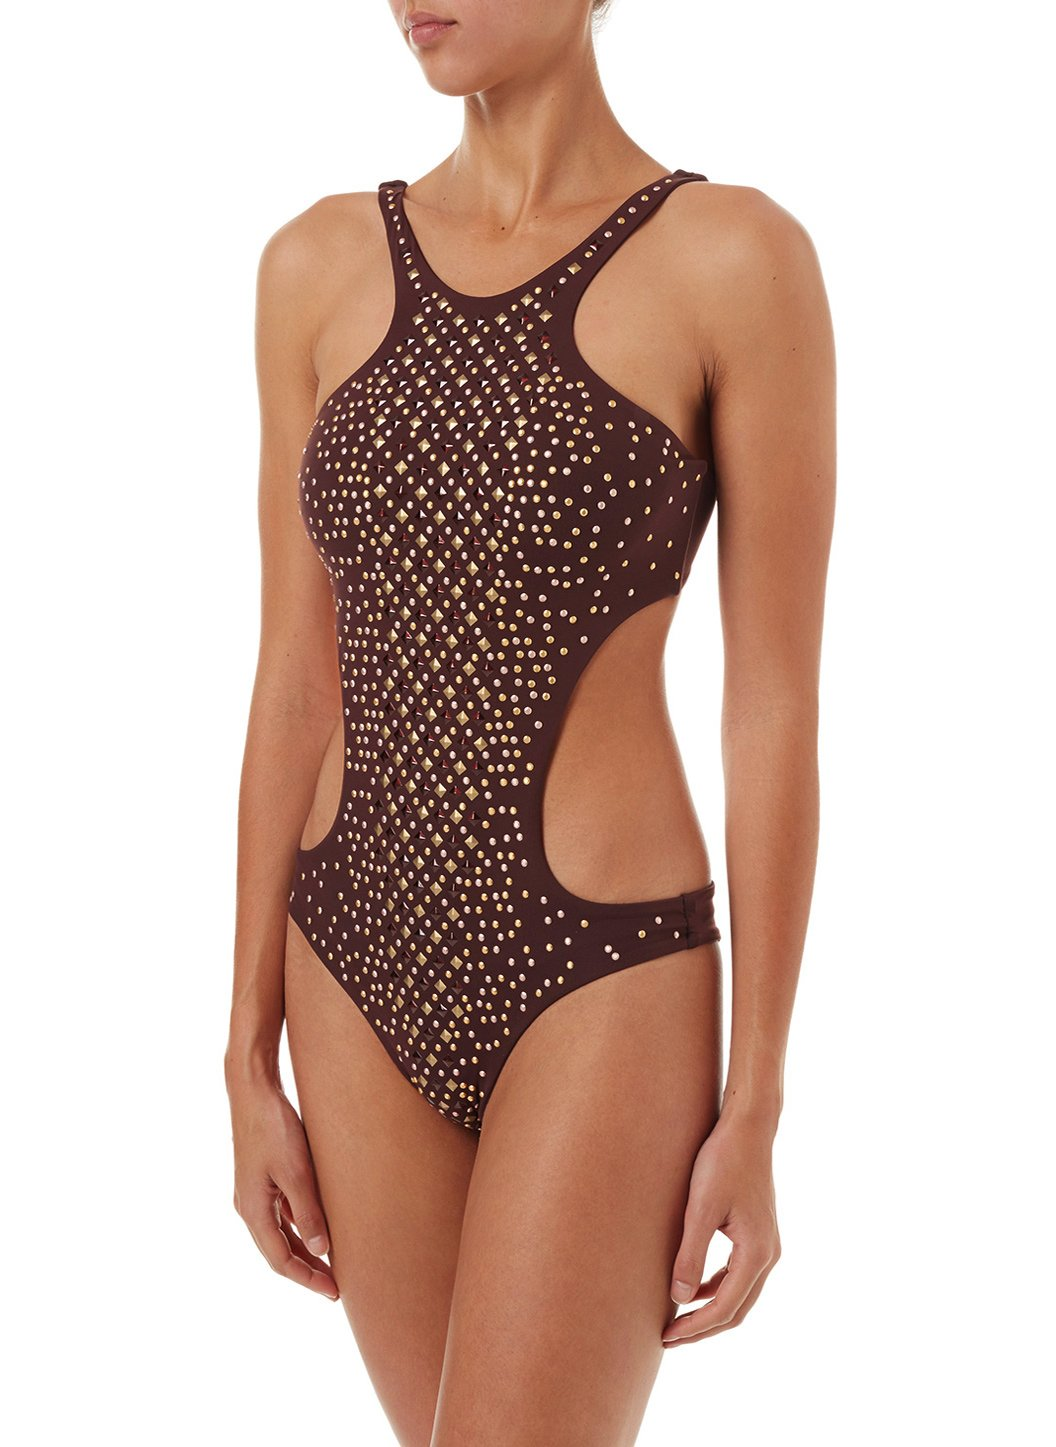 hollywood walnut studded cutout onepiece swimsuit 2019 F